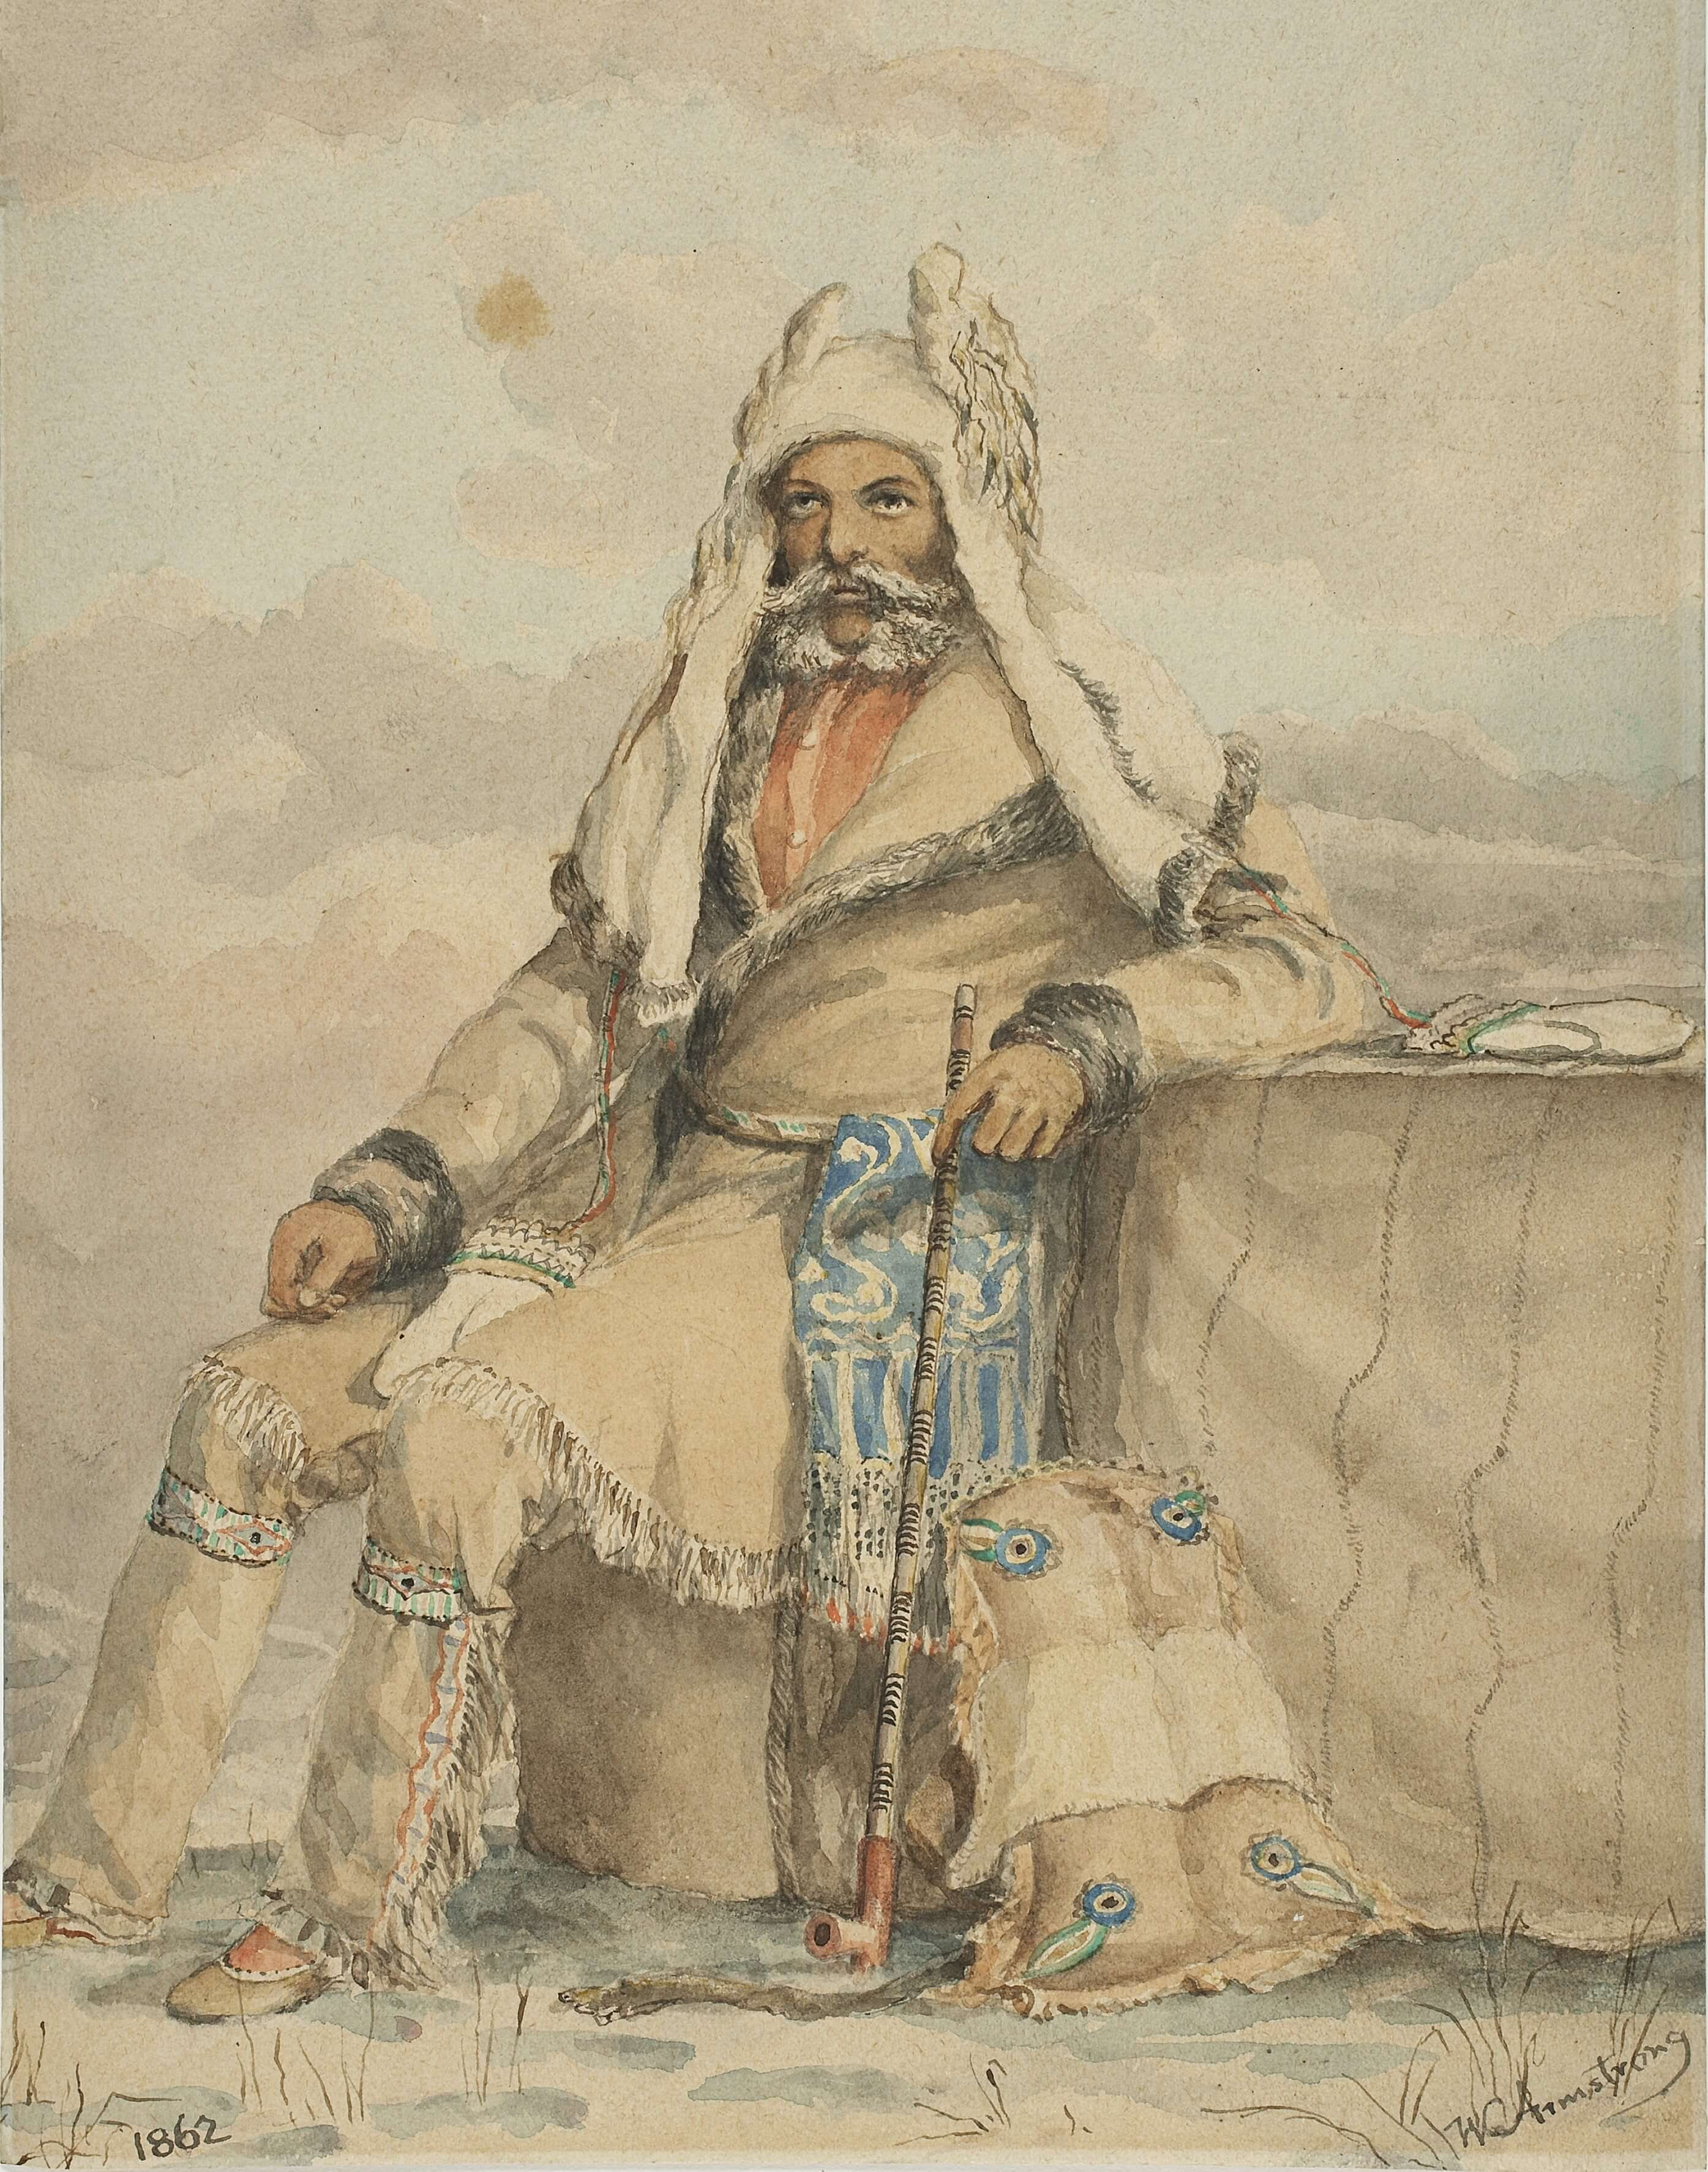 Old painting of Arctic explorer, Orcadian man J Rae in Cree costume